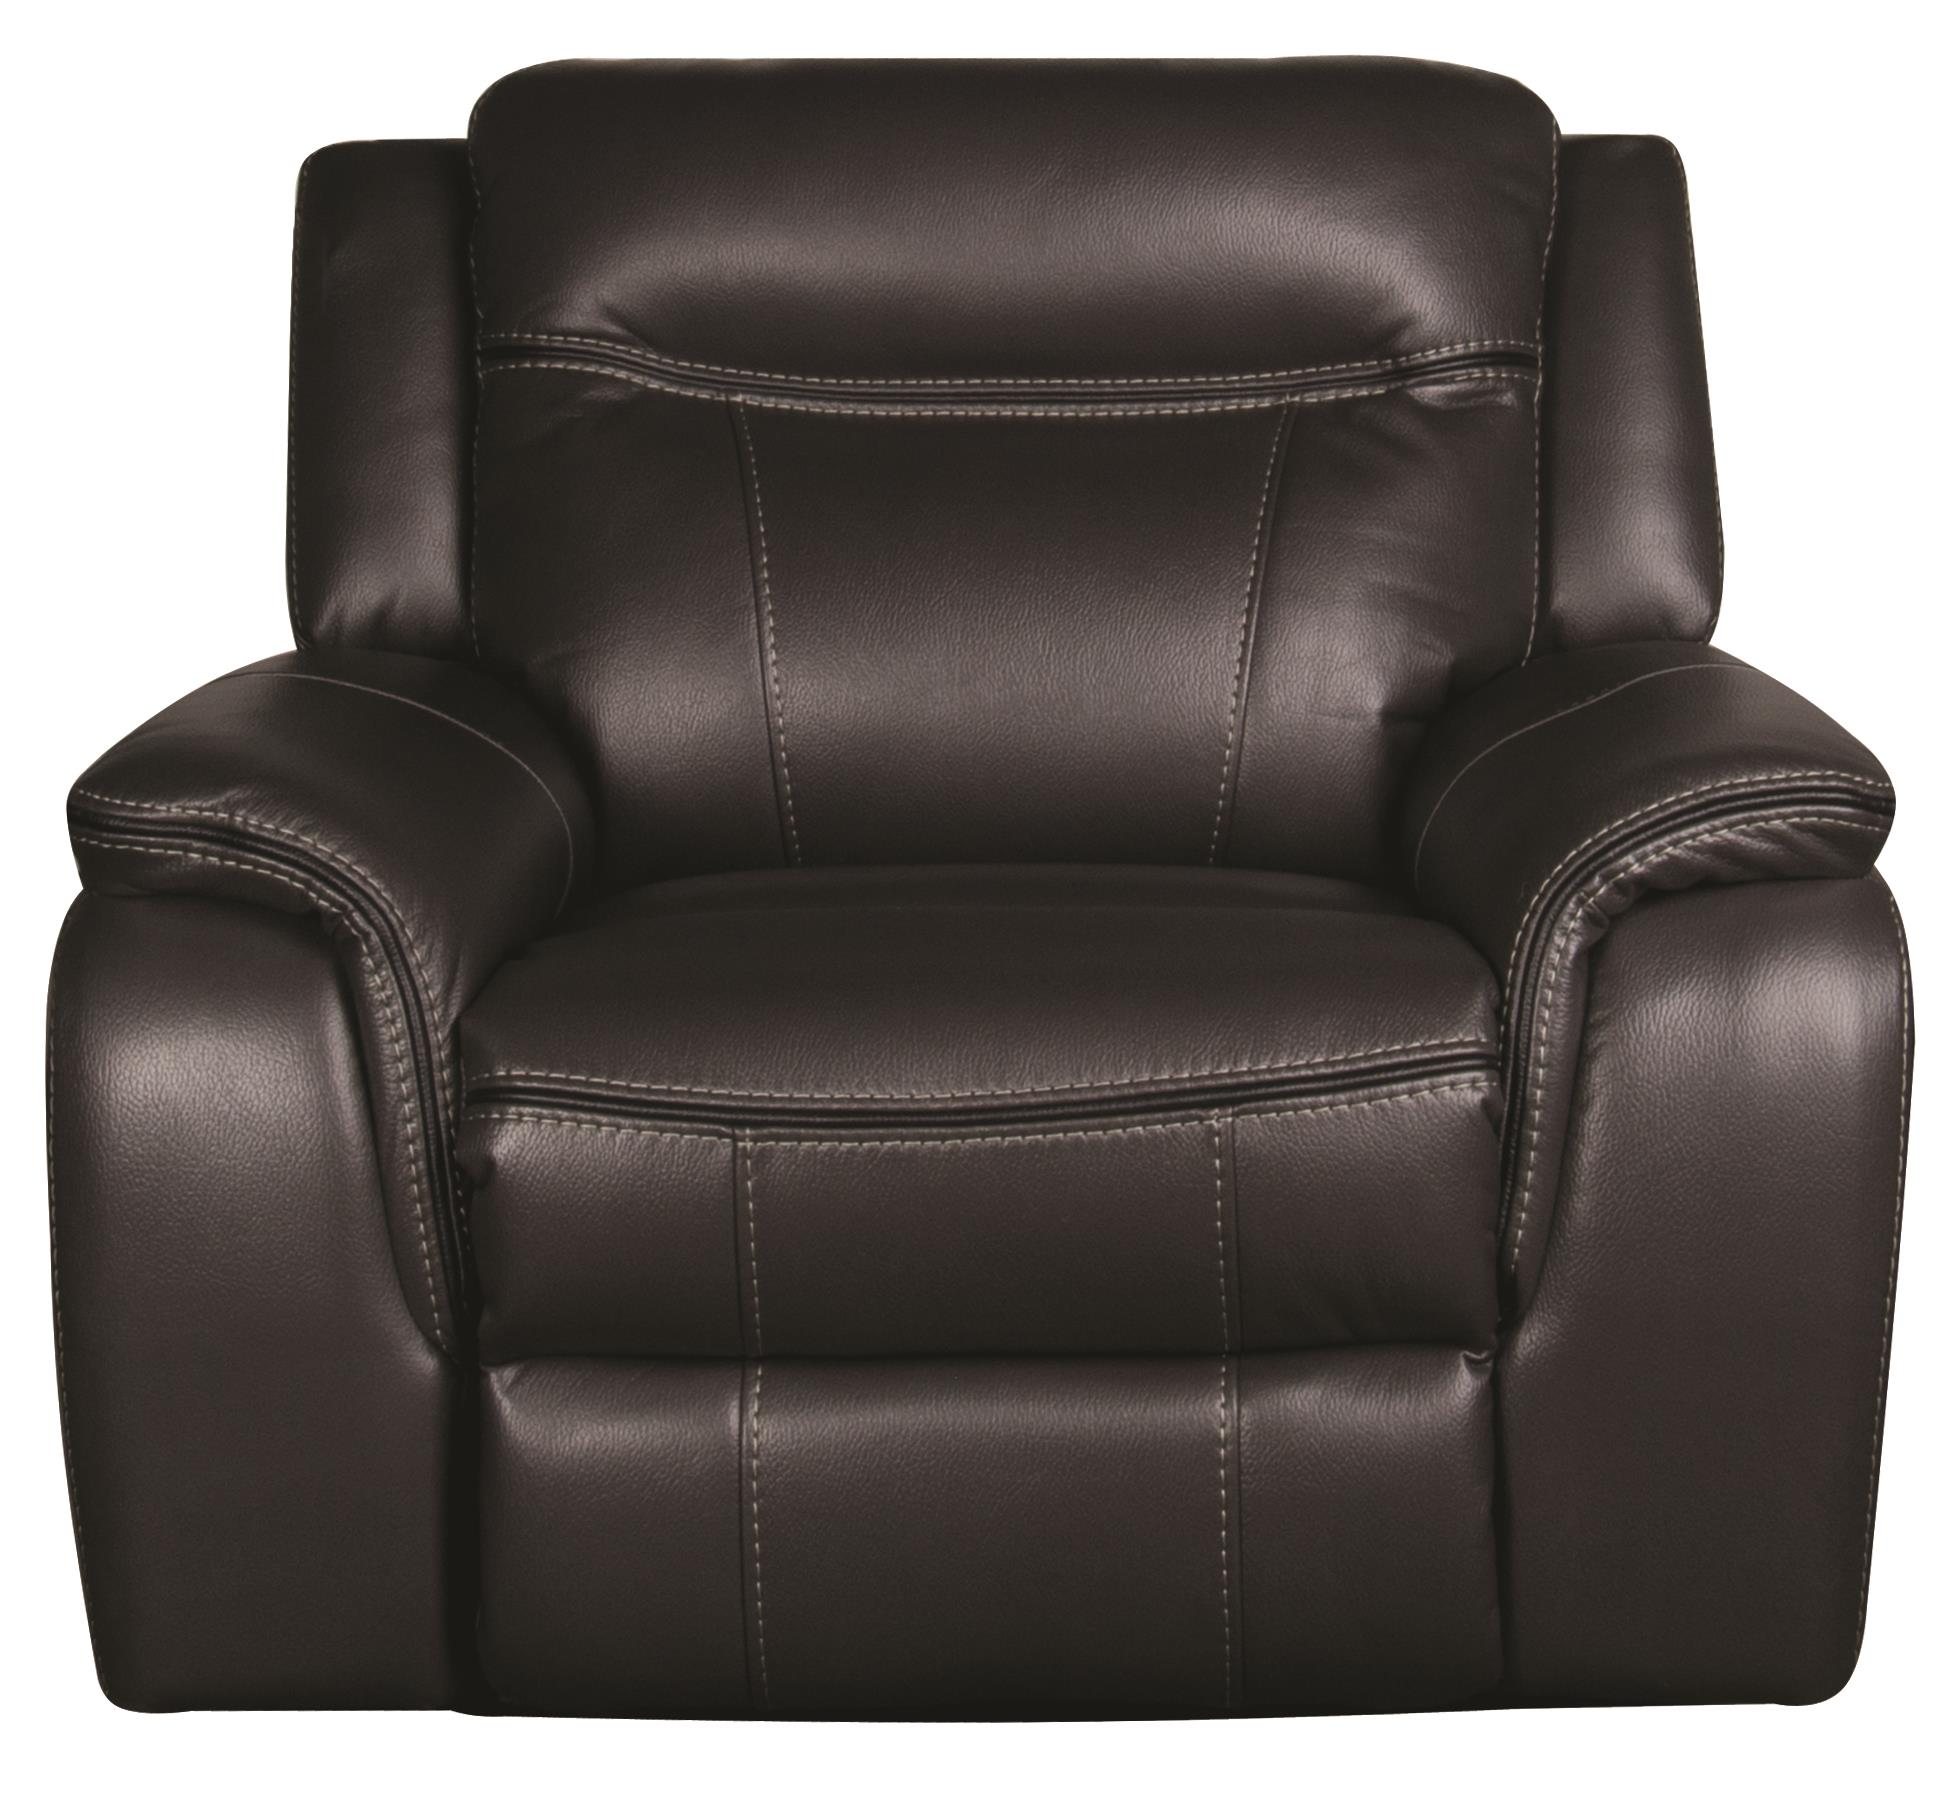 Morris Home Curtis Curtis Power Recliner - Item Number: 108829409